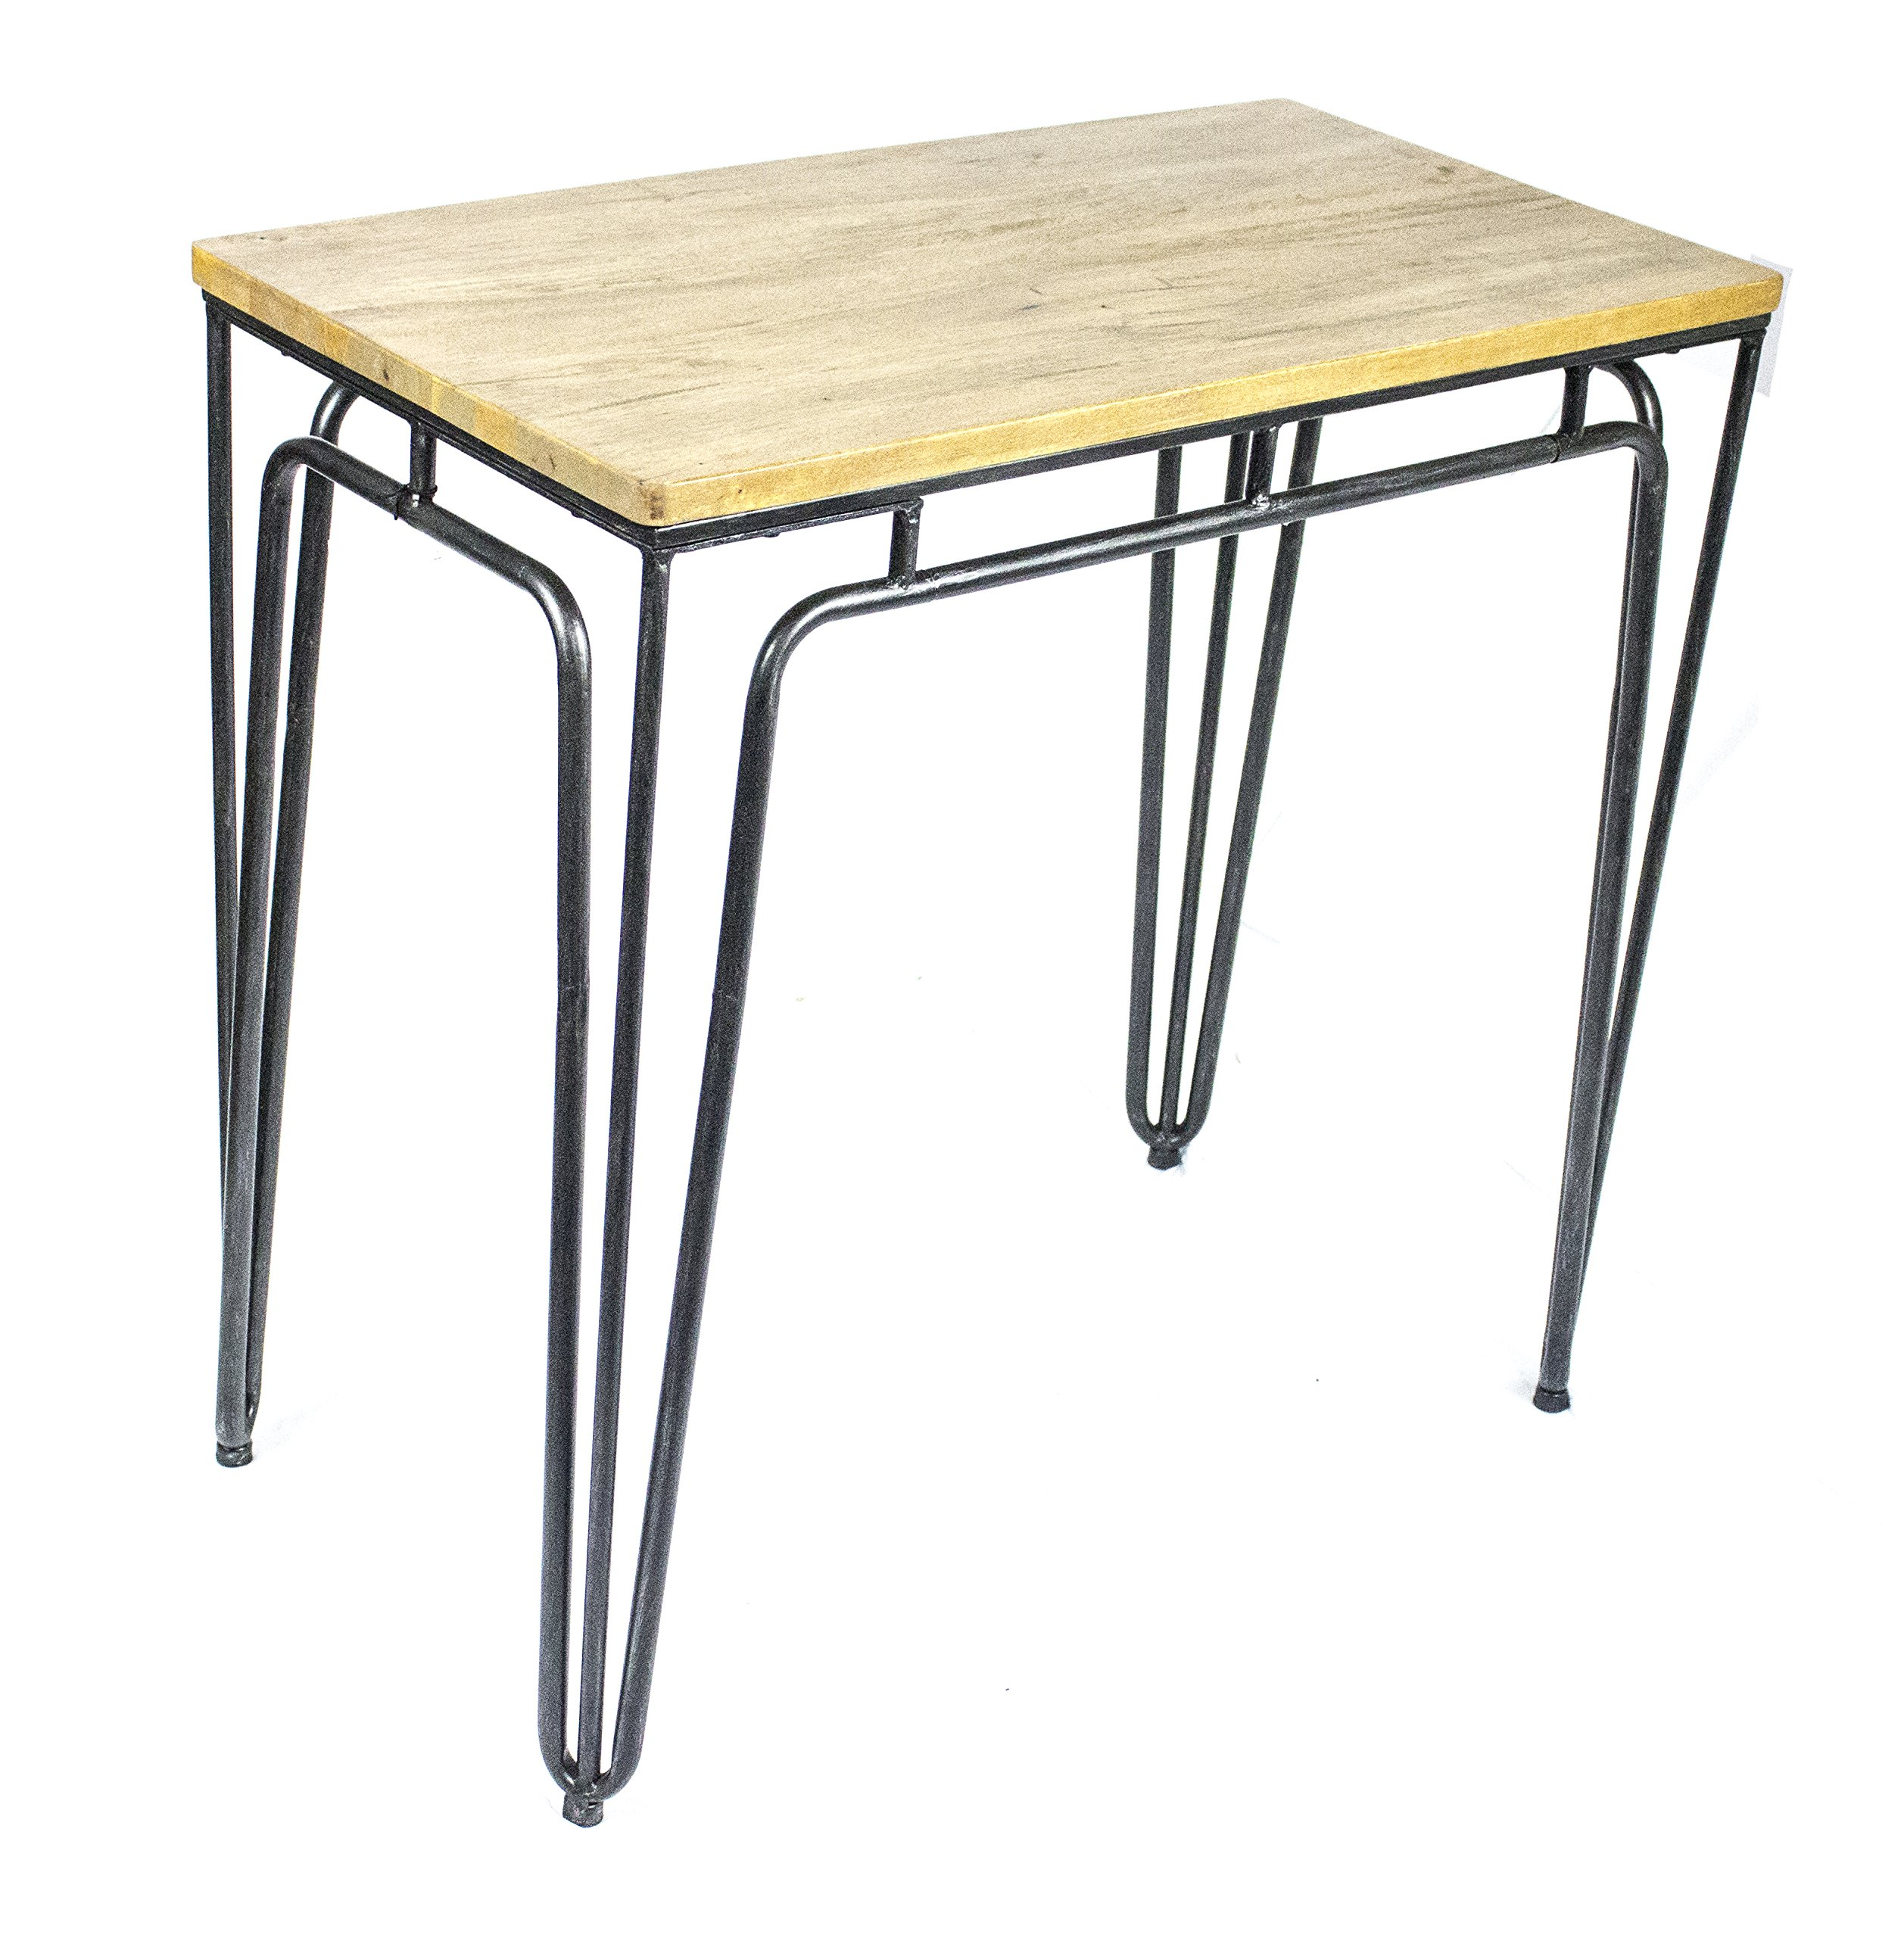 Sagebrook Home Metal Console Table W/ Natural Wood Top, Black Metal/Wood, 30.75 x 16.75 x 29 Inches - Constructed of high quality Metal/Wood. This home accent piece will brighten and liven up your room, as well as add a touch of fun and surprise to your home decor. Measures: 30.75 x 16.75 x 29 Inches. With our large range of styles, our decorative accents will give your space that extra special love to enjoy your new home furnishings. Color: Black. The color of this beautiful and lovely home decoration is very unique and will iluminate any room. - living-room-furniture, living-room, console-tables - 912K6vkRFxL -